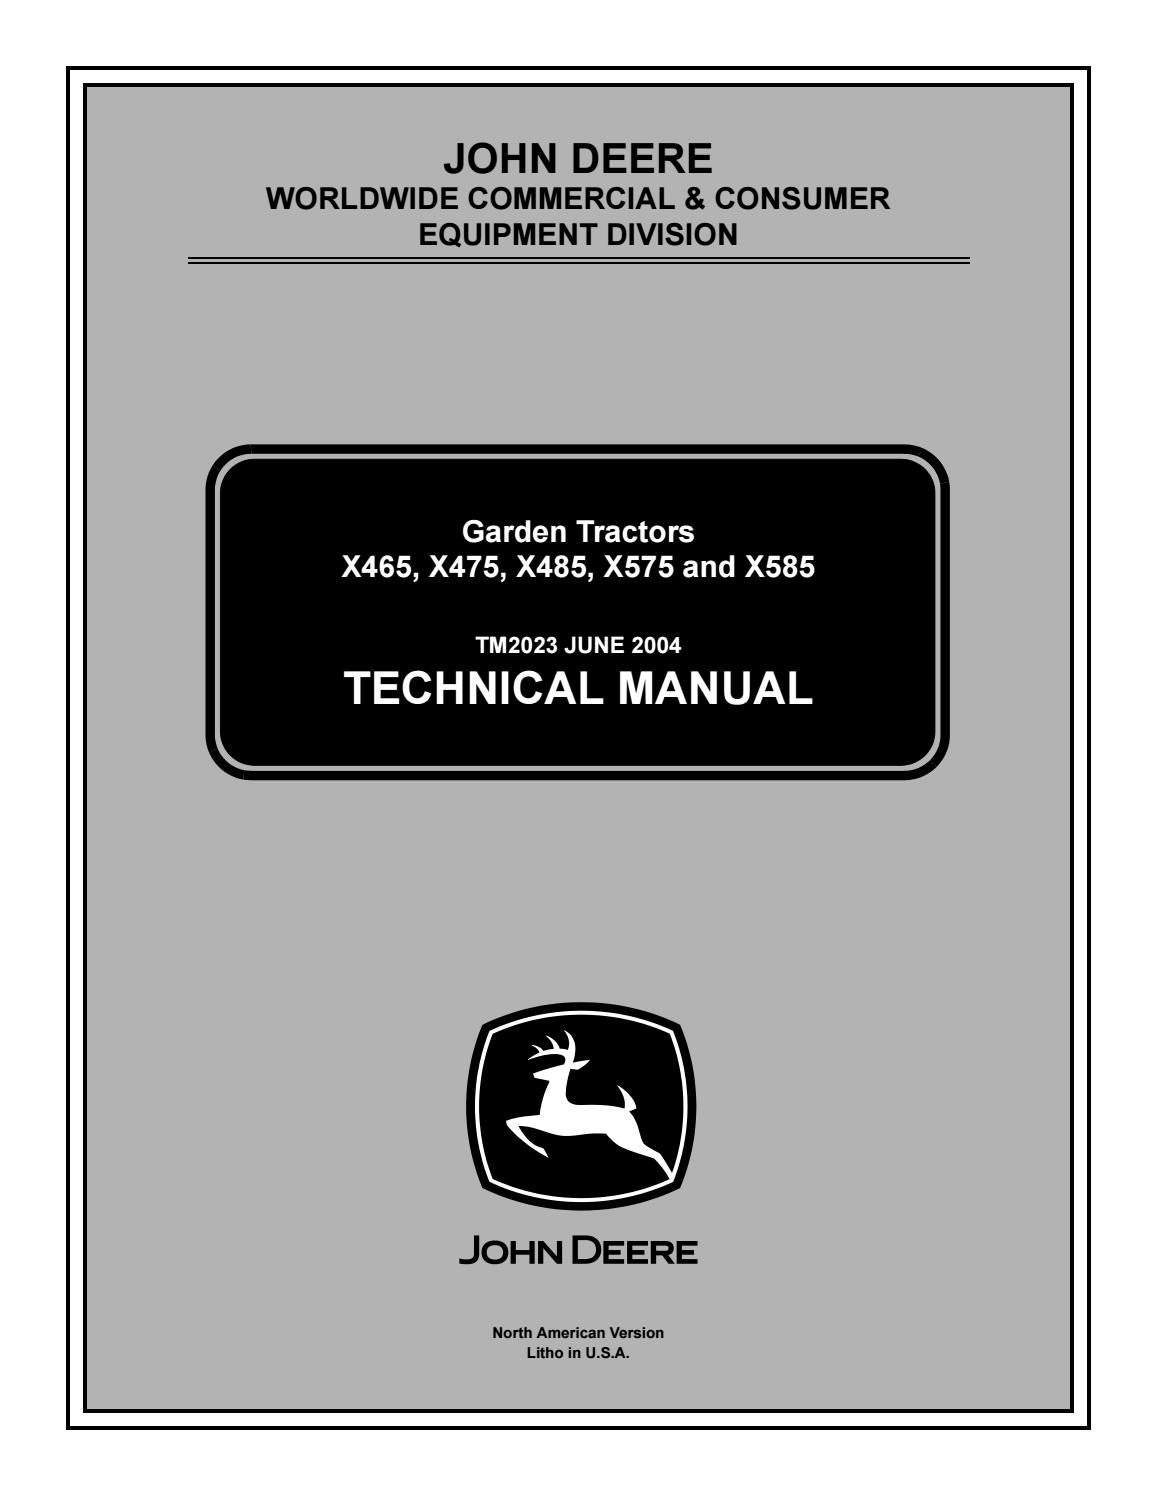 john deere x748 wiring diagram with John Deere X485 Mower Deck Diagram For Wiring on John Deere 5420n Fuse Box Diagram additionally John Deere Generator Wiring Diagram further John Deere 190c Mower Deck Diagram furthermore John Deere X485 Mower Deck Diagram For Wiring in addition John Deere 160 Garden Trqctor Wireing Diagram.